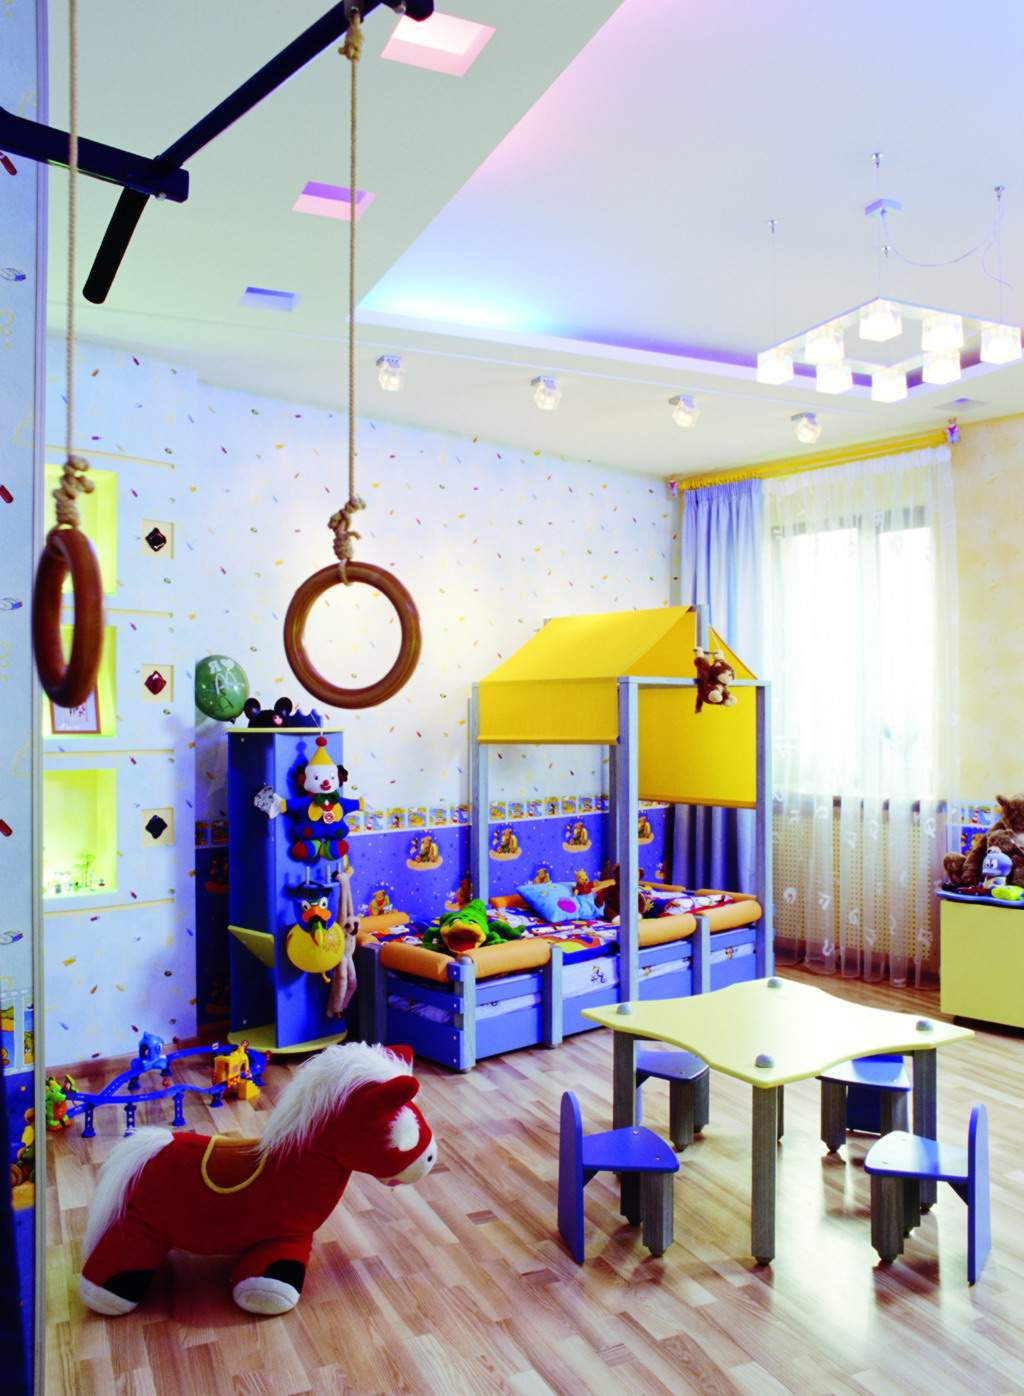 15 creative kids bedroom decorating ideas - Children bedroom ideas ...